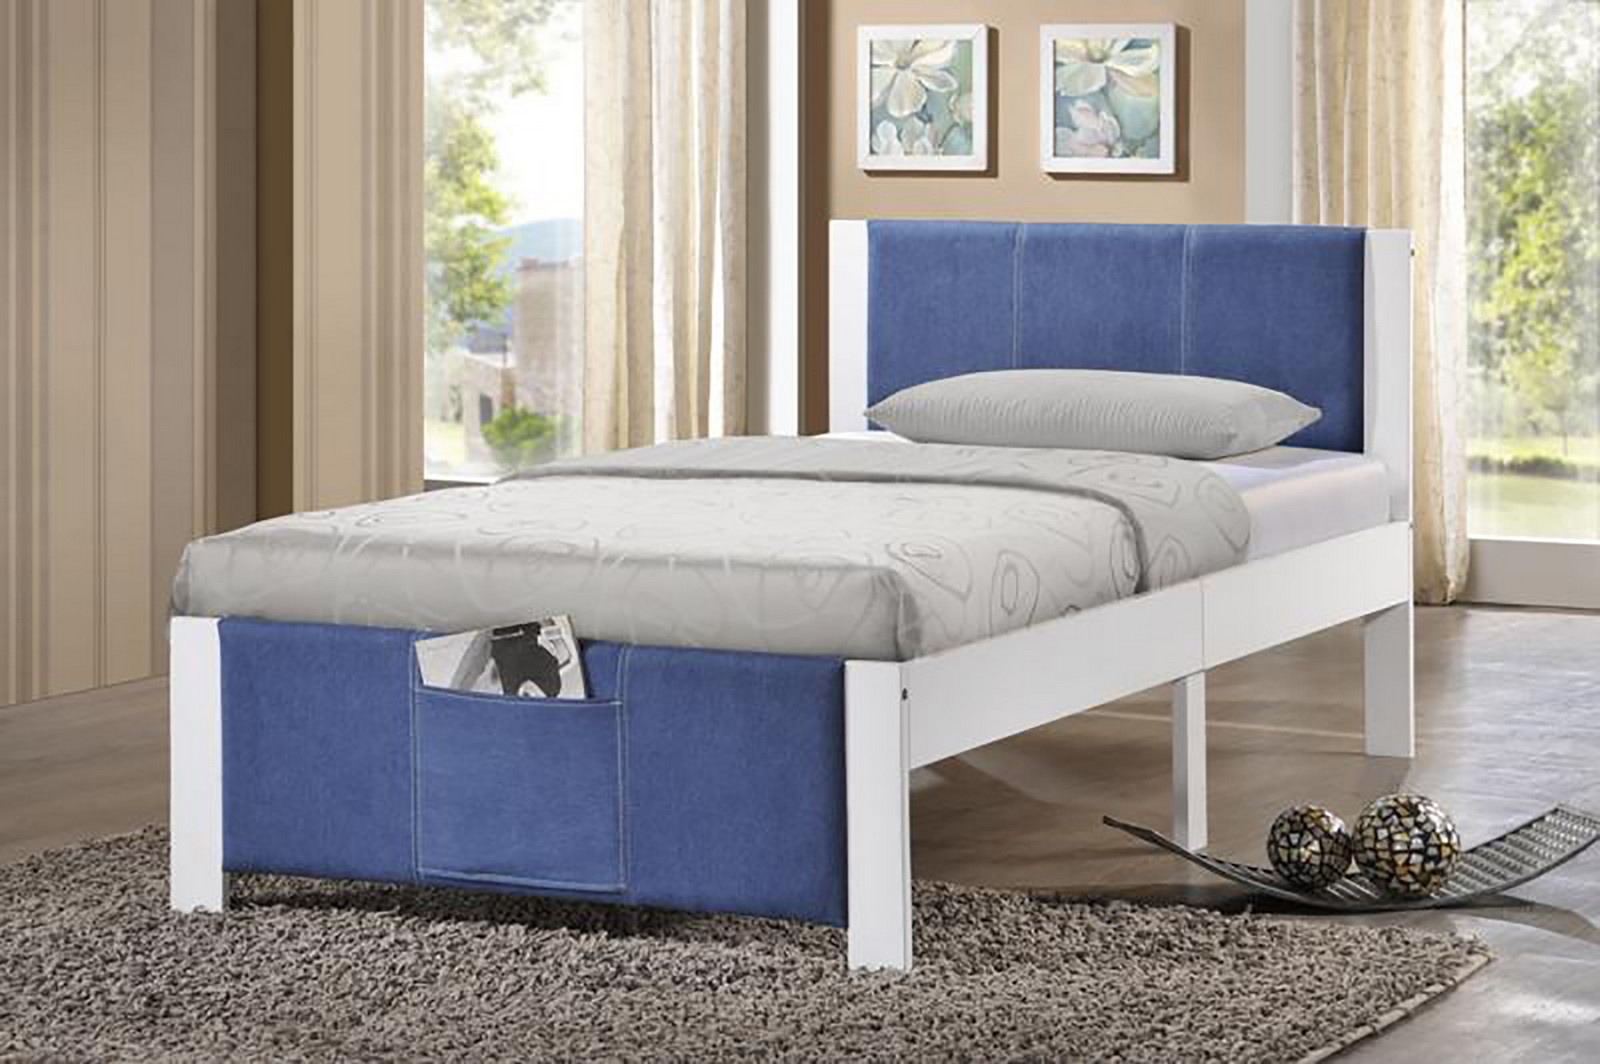 Hillsdale Ventura Twin Bed - White - Denim